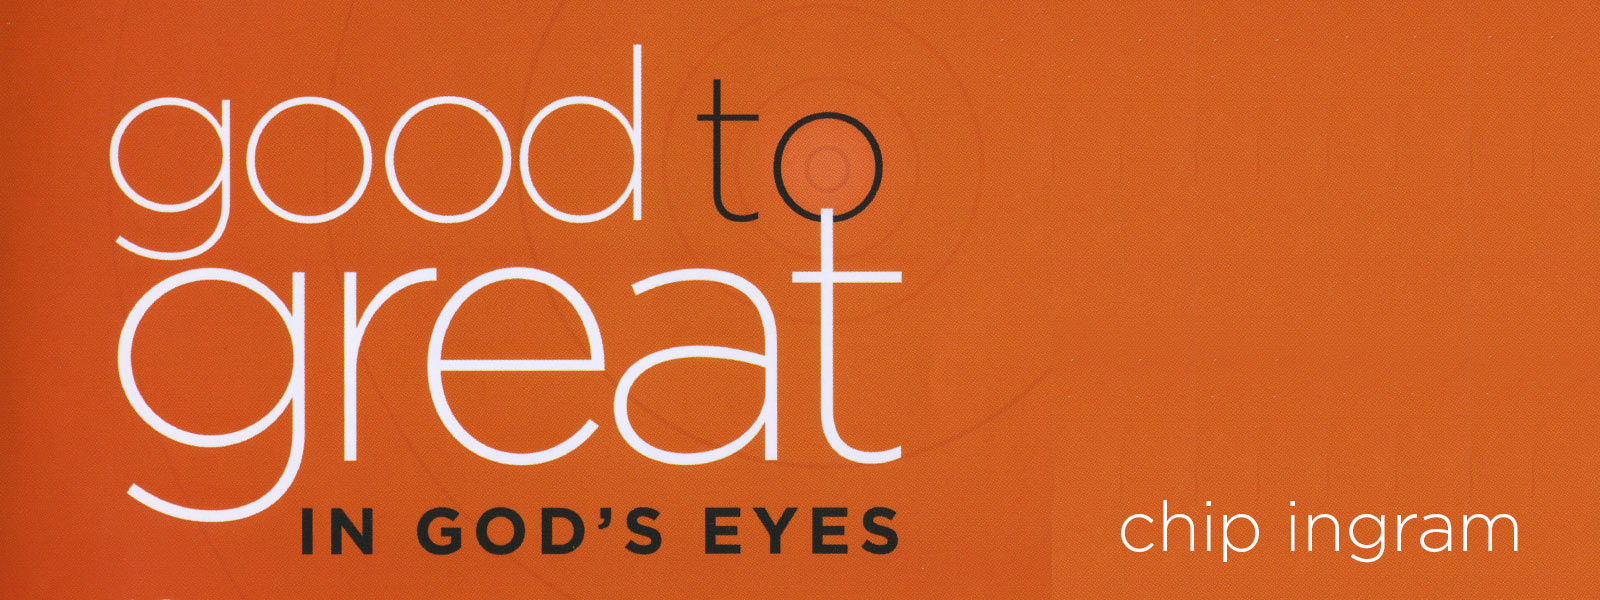 RightNow Media Streaming Video Bible Study Good To Great In Gods Eyes Chip Ingram Living On The Edge